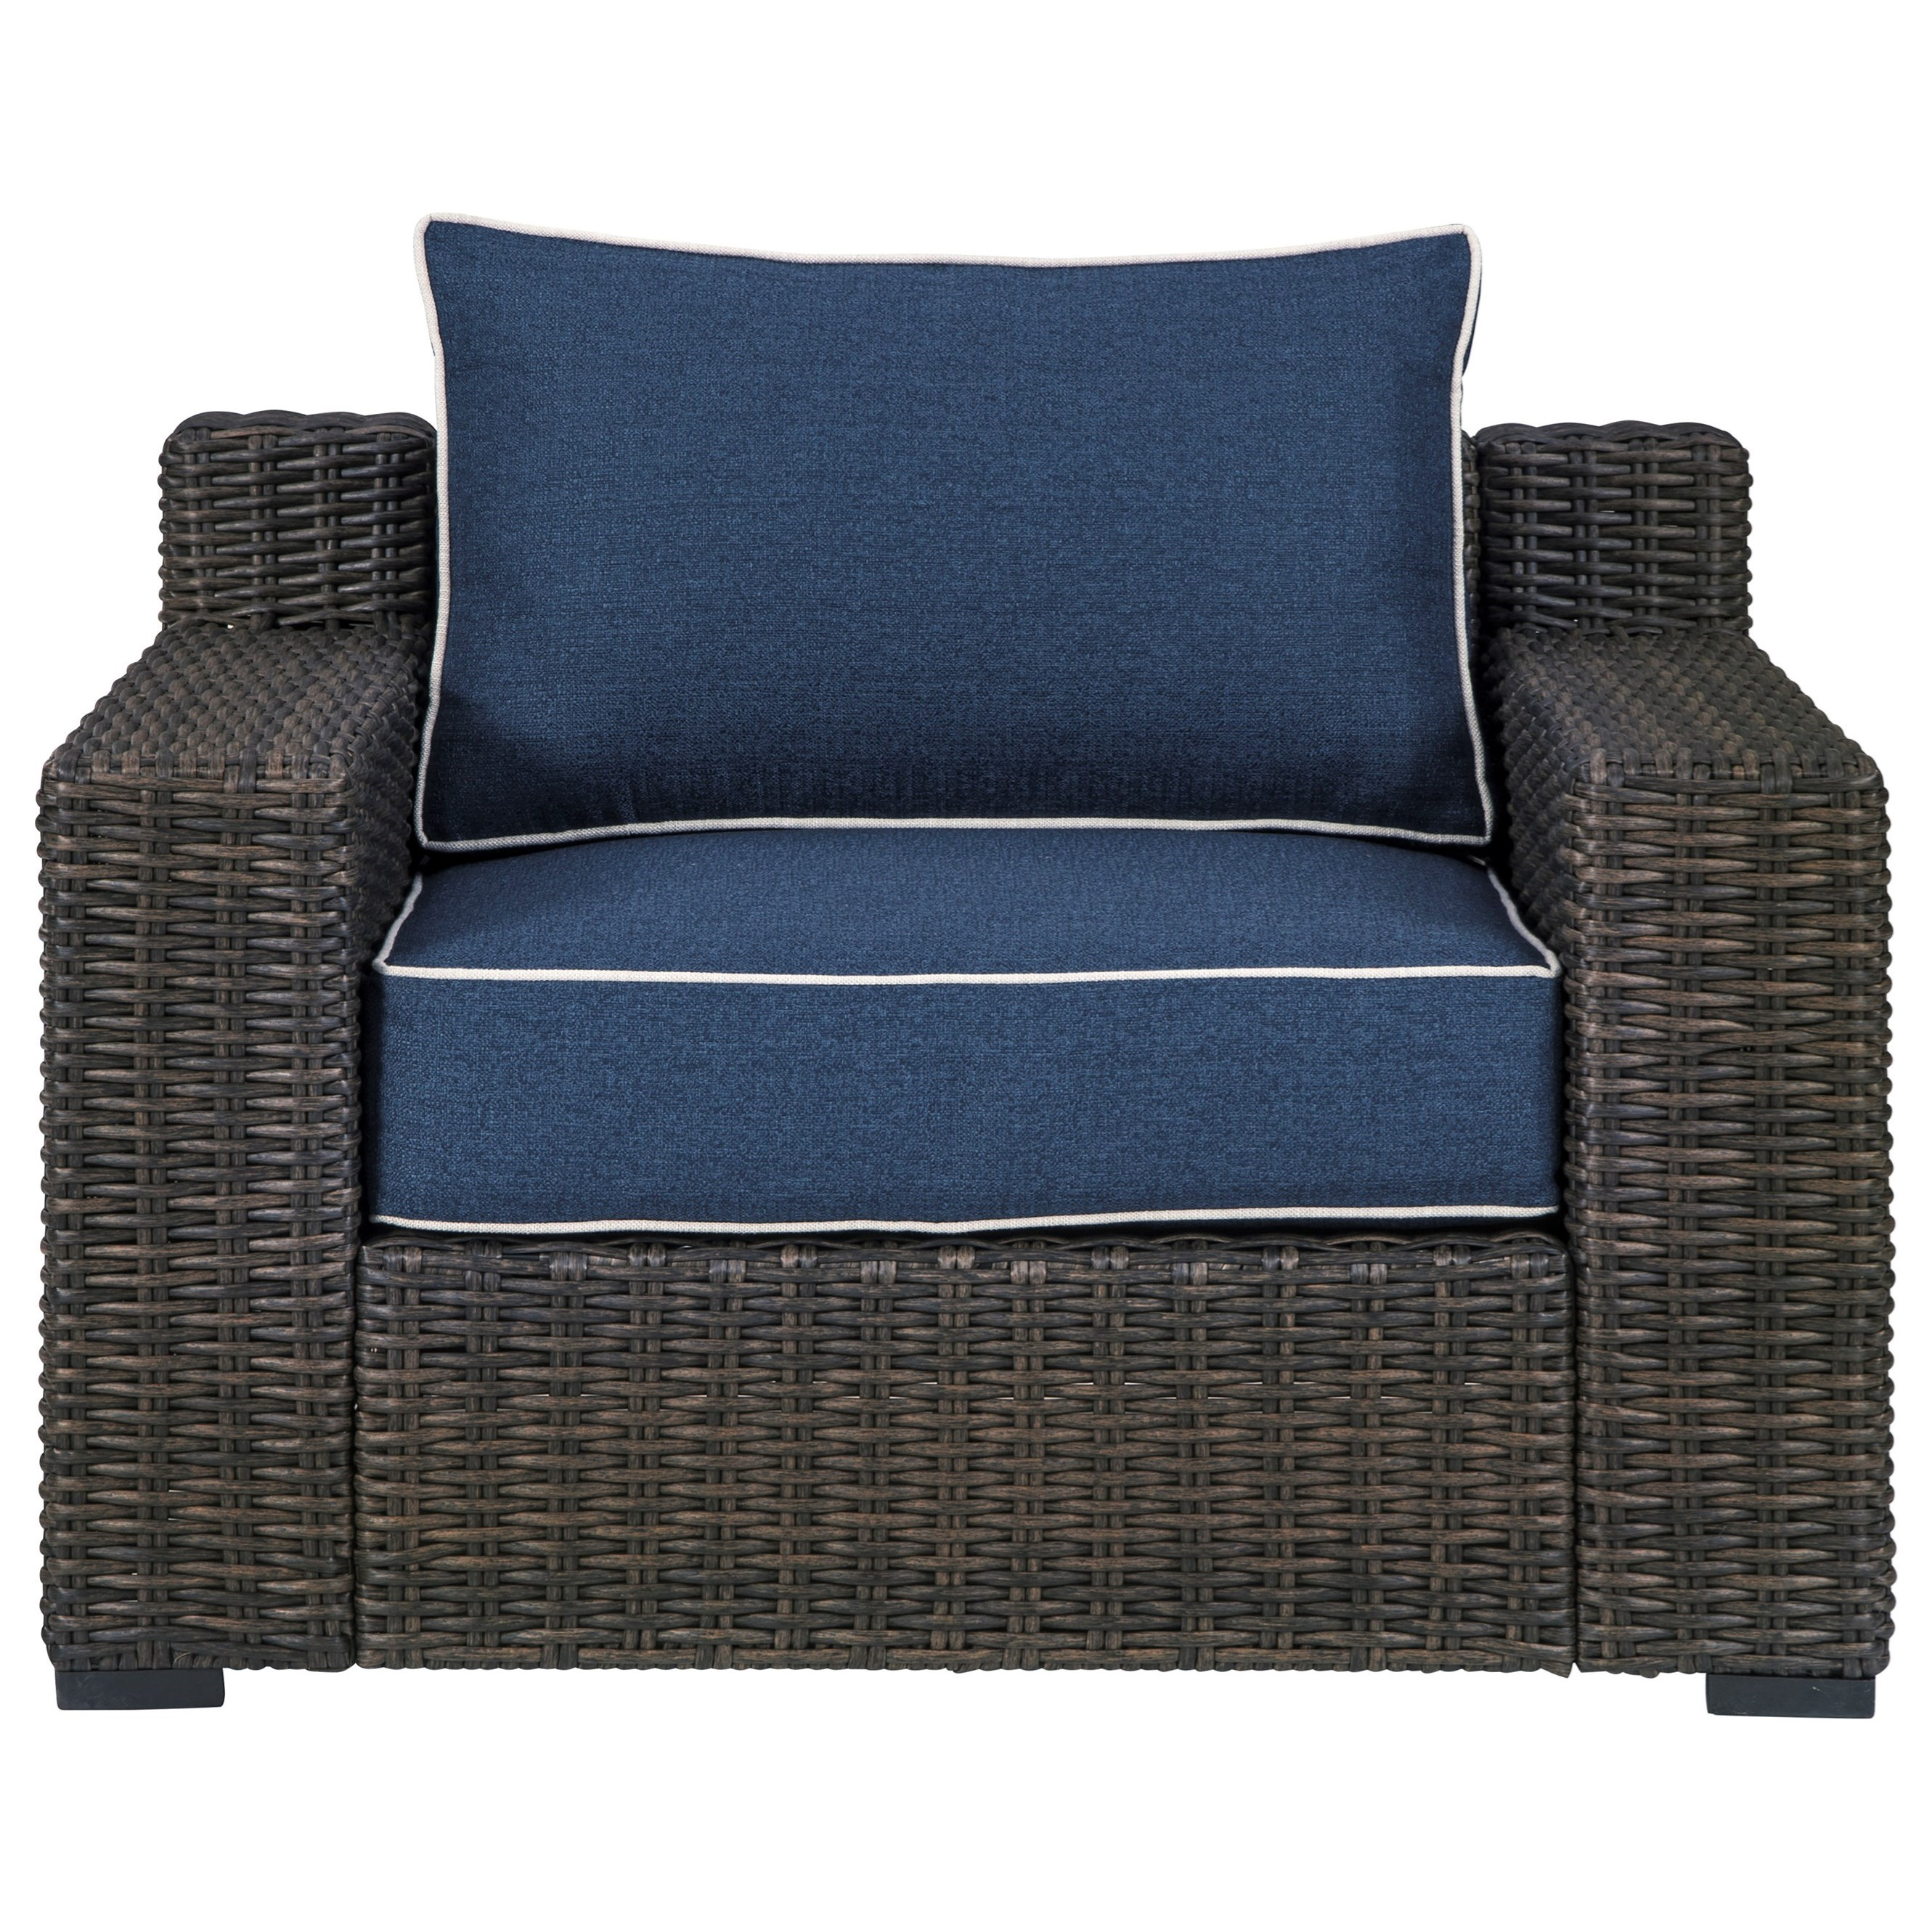 Grasson Lane Lounge Chair w/ Cushion by Signature at Walker's Furniture